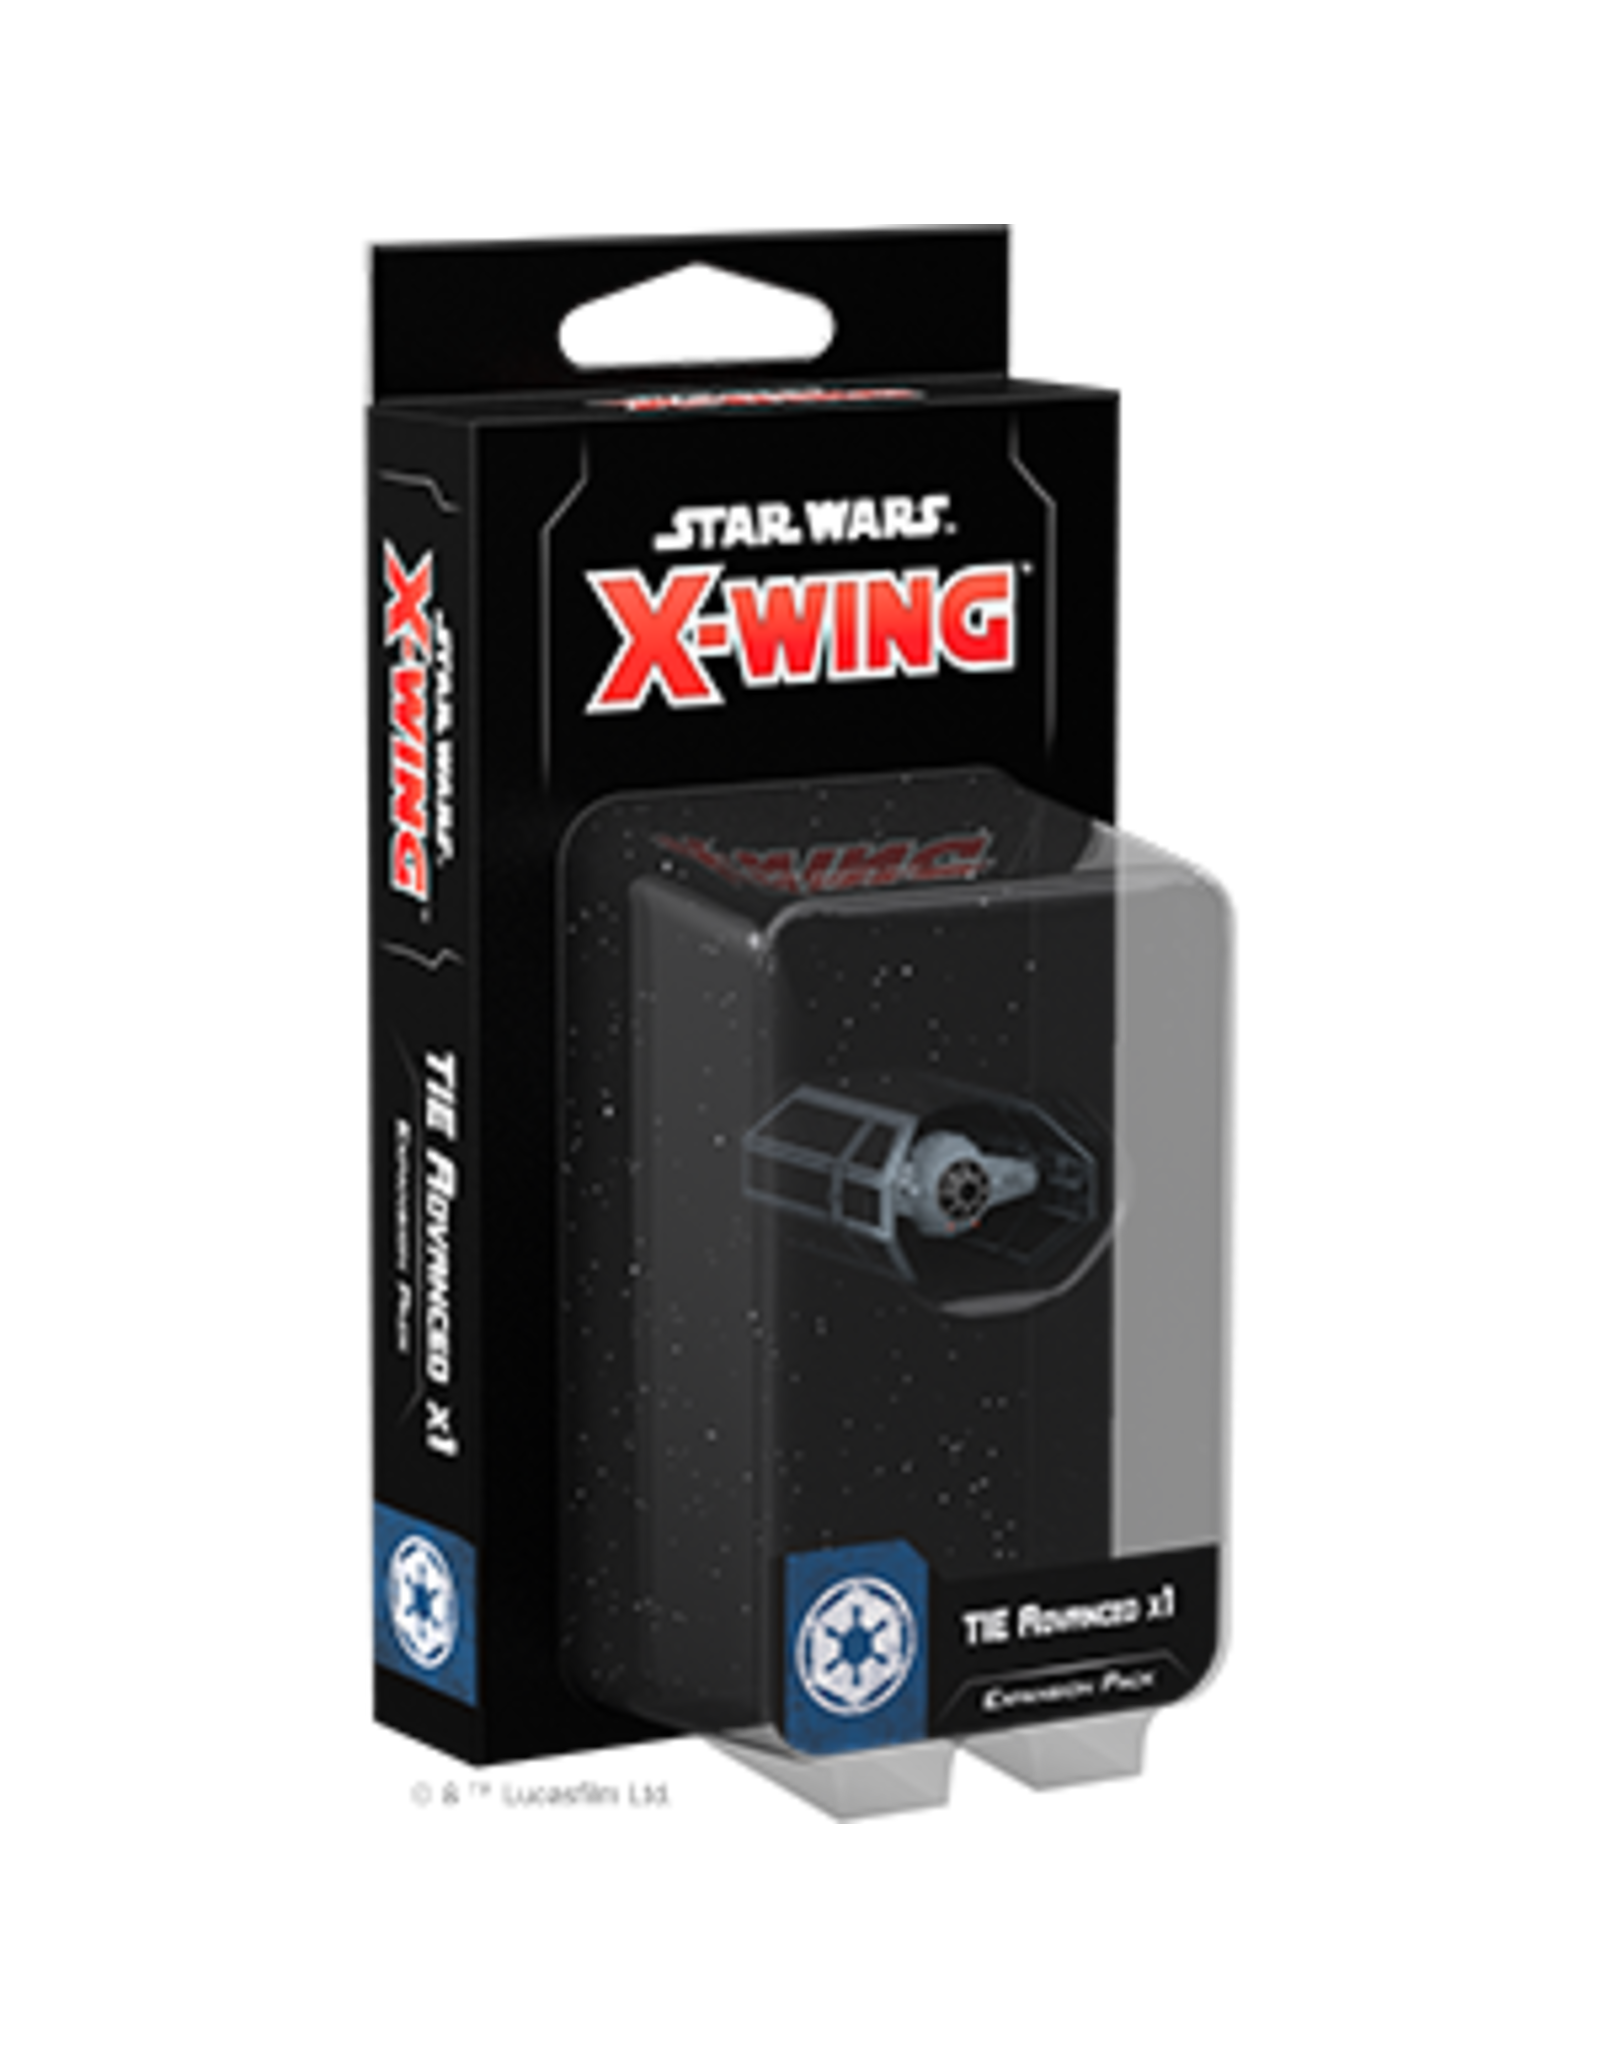 Fantasy Flight Games Star Wars X-Wing 2nd Edition: TIE Advanced x1 Expansion Pack